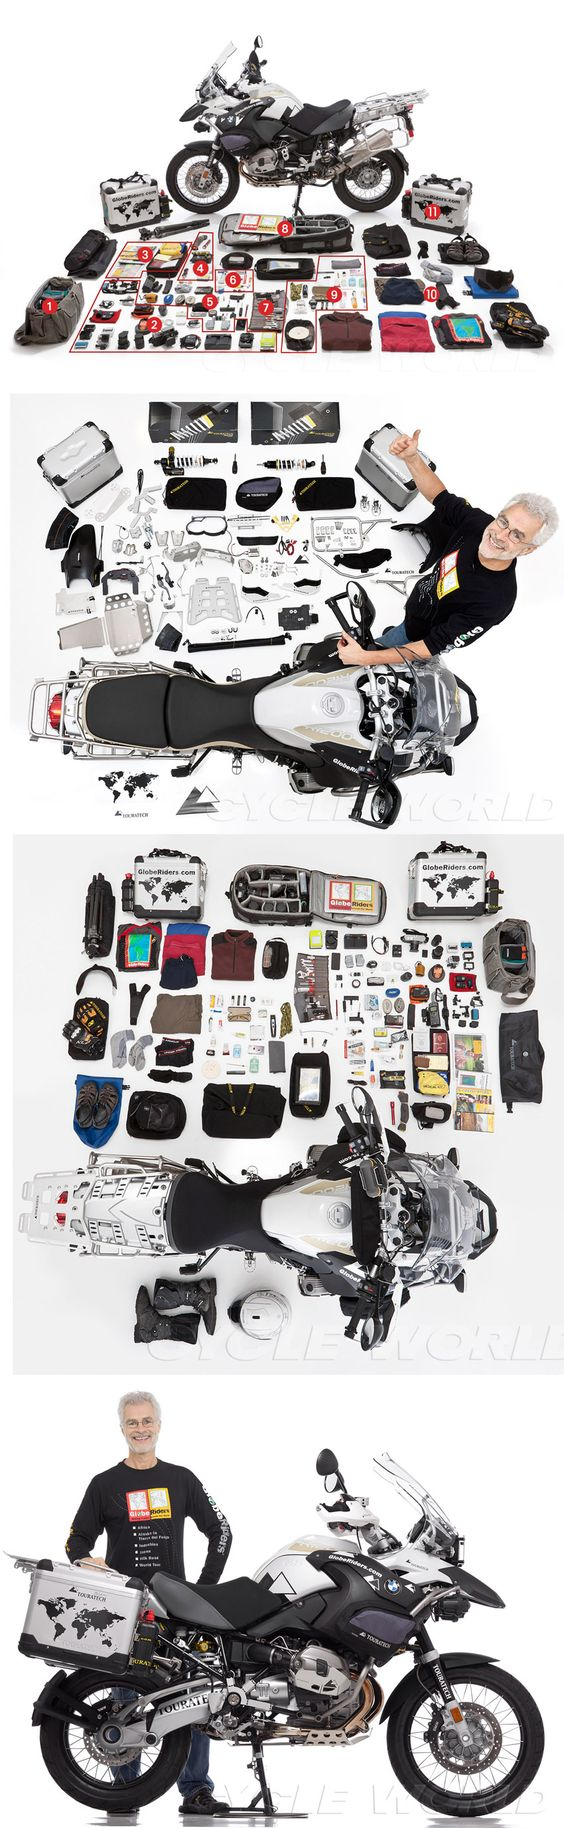 "PACKING YOUR ADVENTURE BIKE ""MULE"" How one man prepared his bike for a 15,000 mile adventure trip    ( BMW R1200GS )"